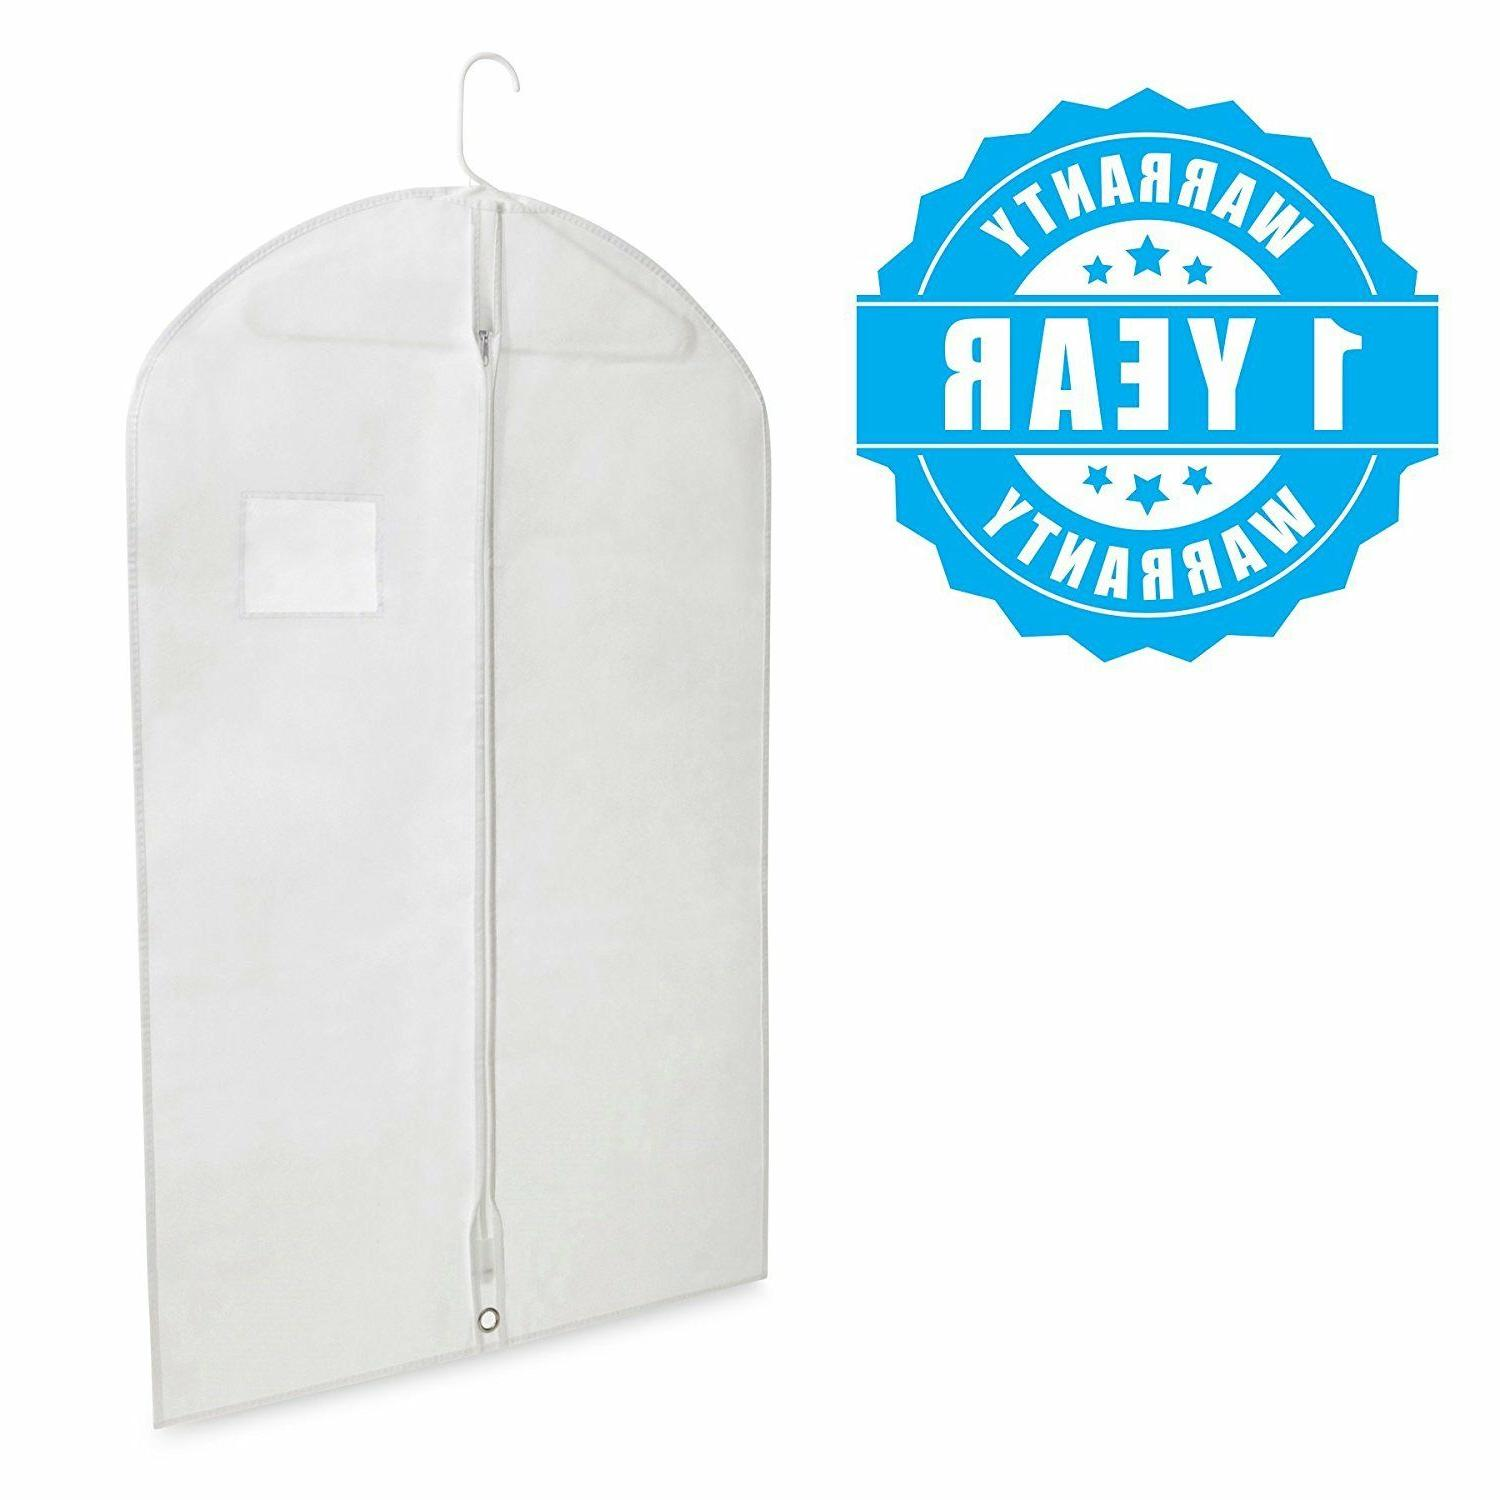 Breathable White Garment Bags Storage Suits & with 10 Pack